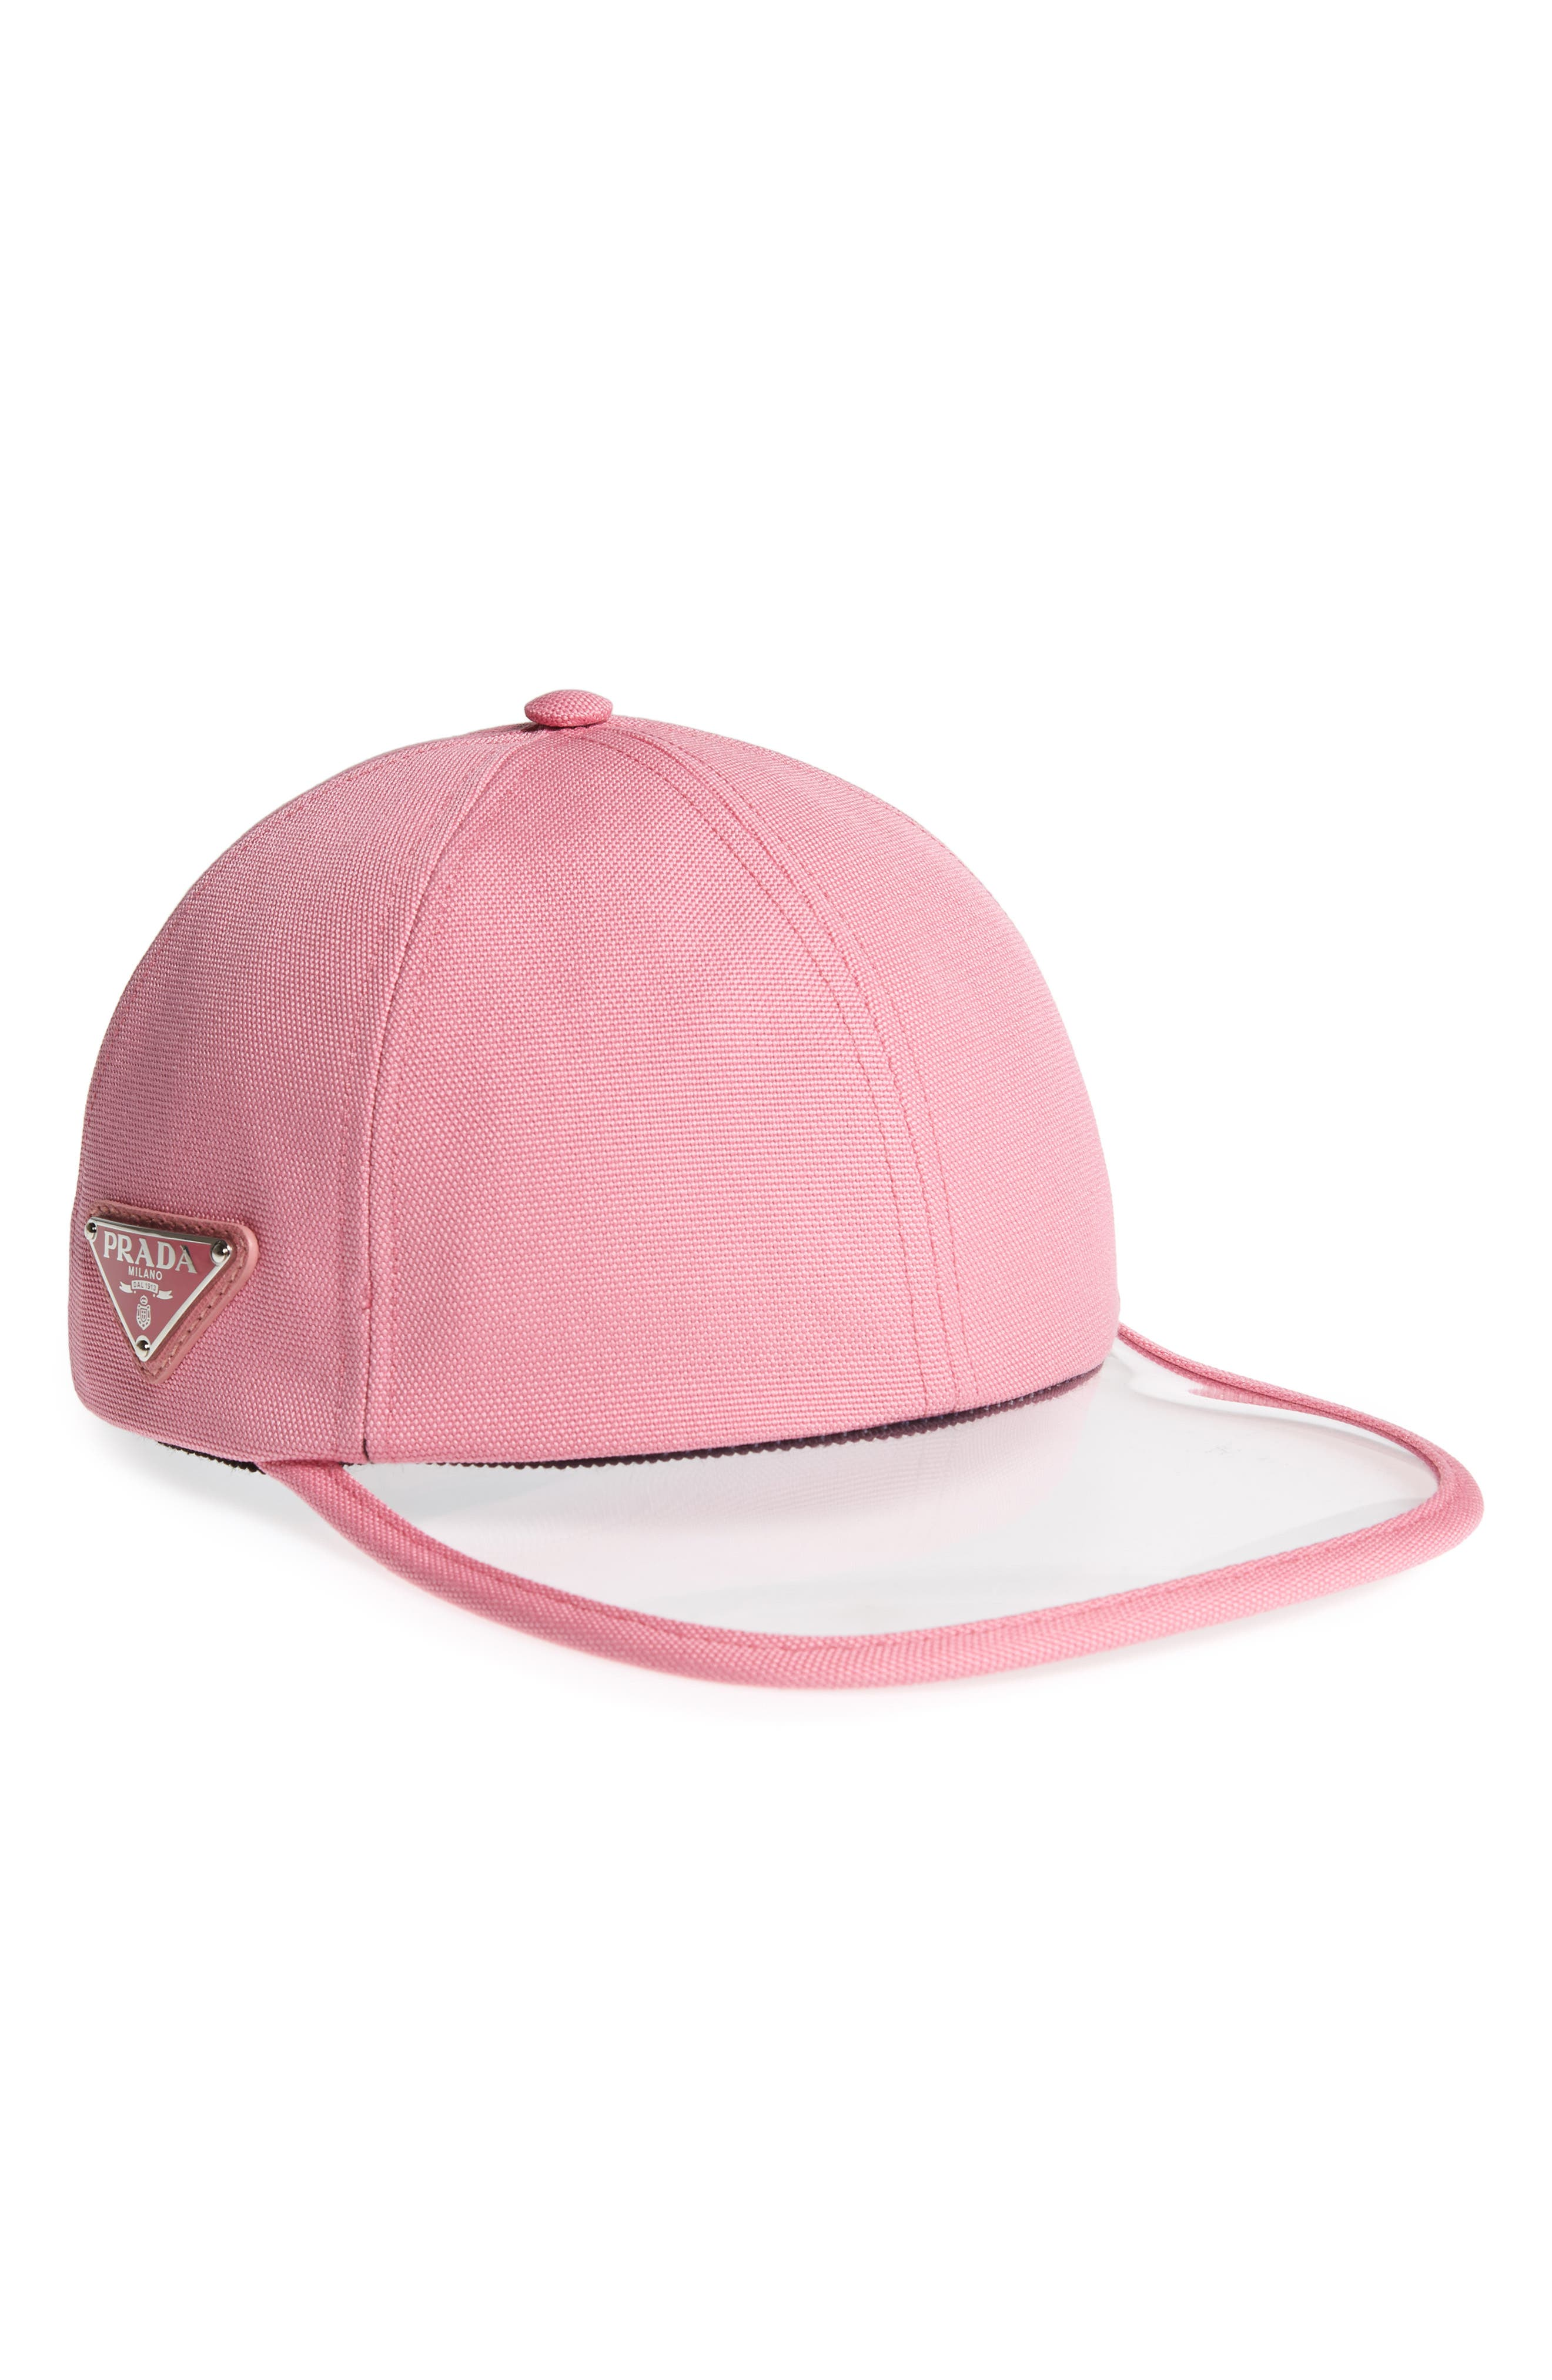 5d984a7aadb86 Prada Hats for Women